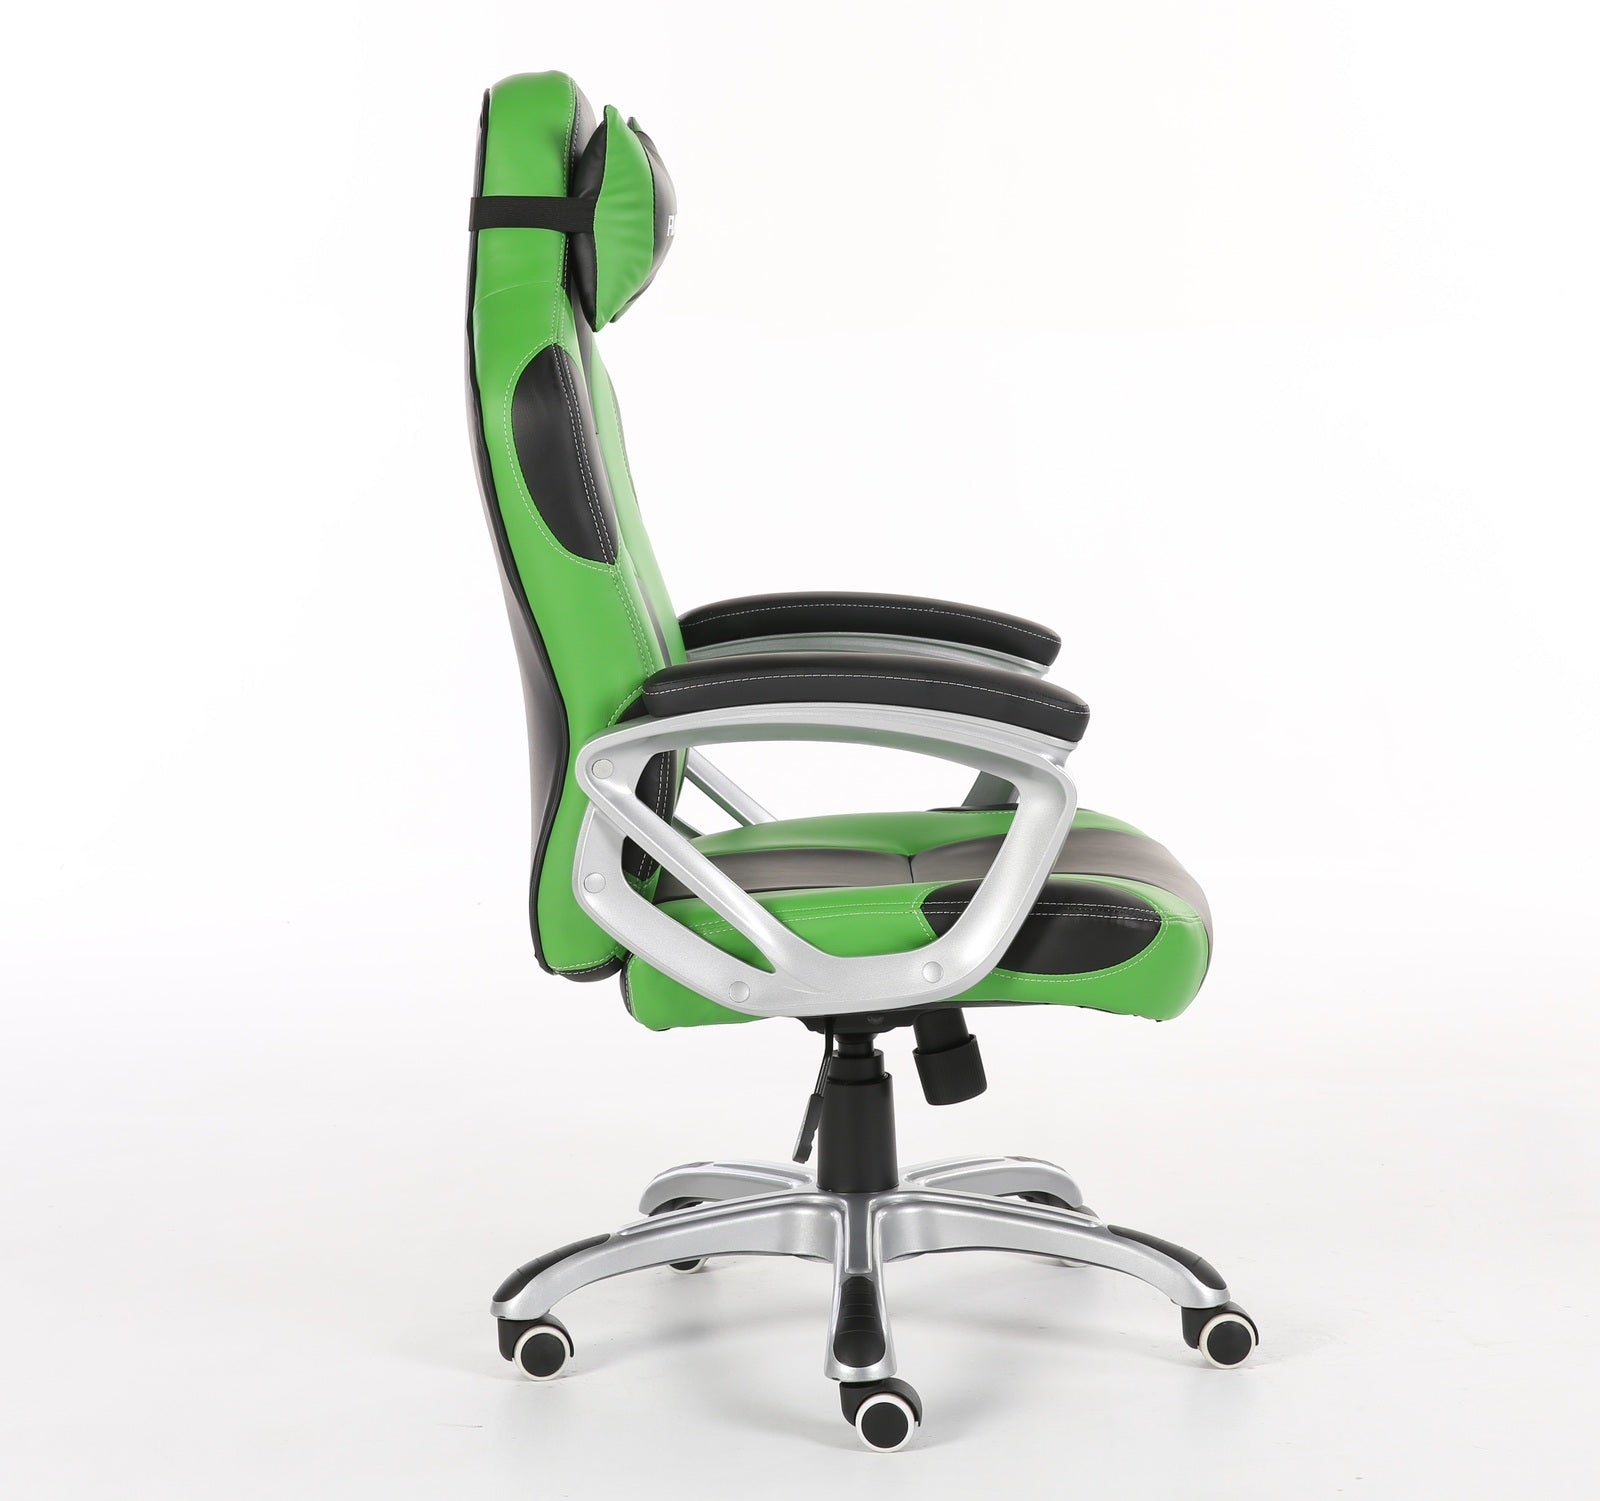 Playmax Gaming Chair Green and Black